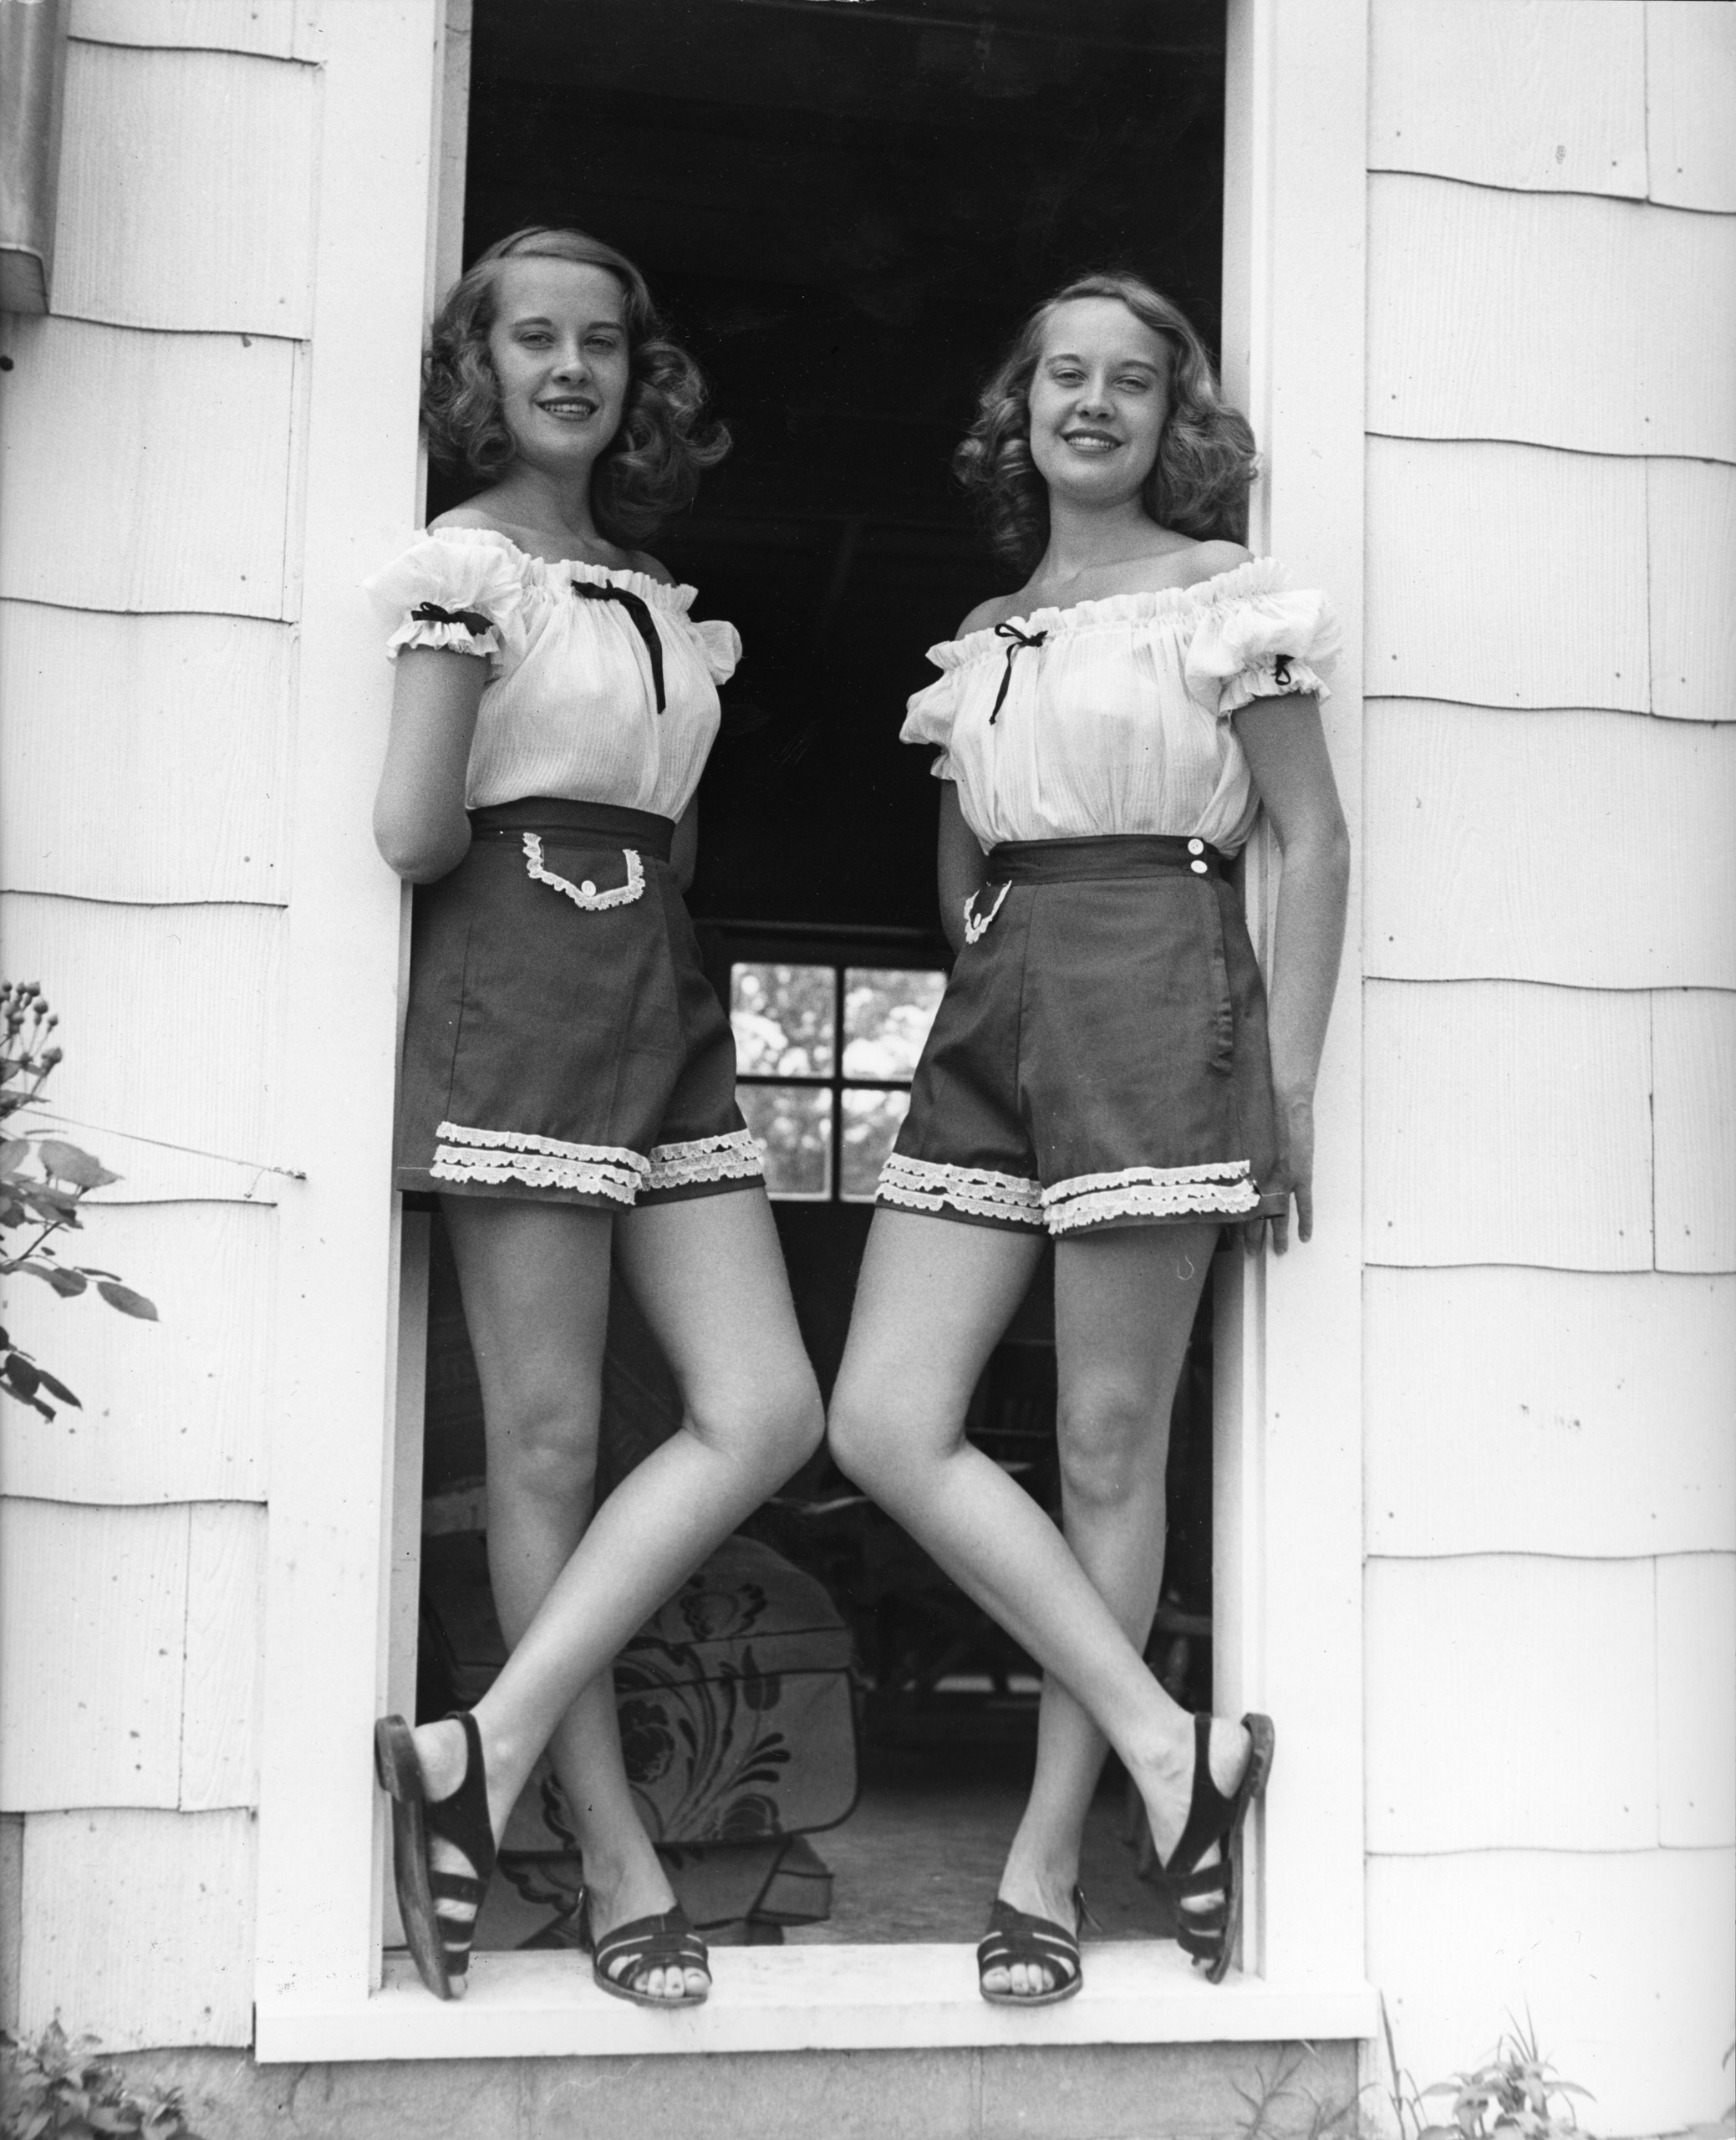 Barbara and Betty Bounds pose in matching outfits, 1947.